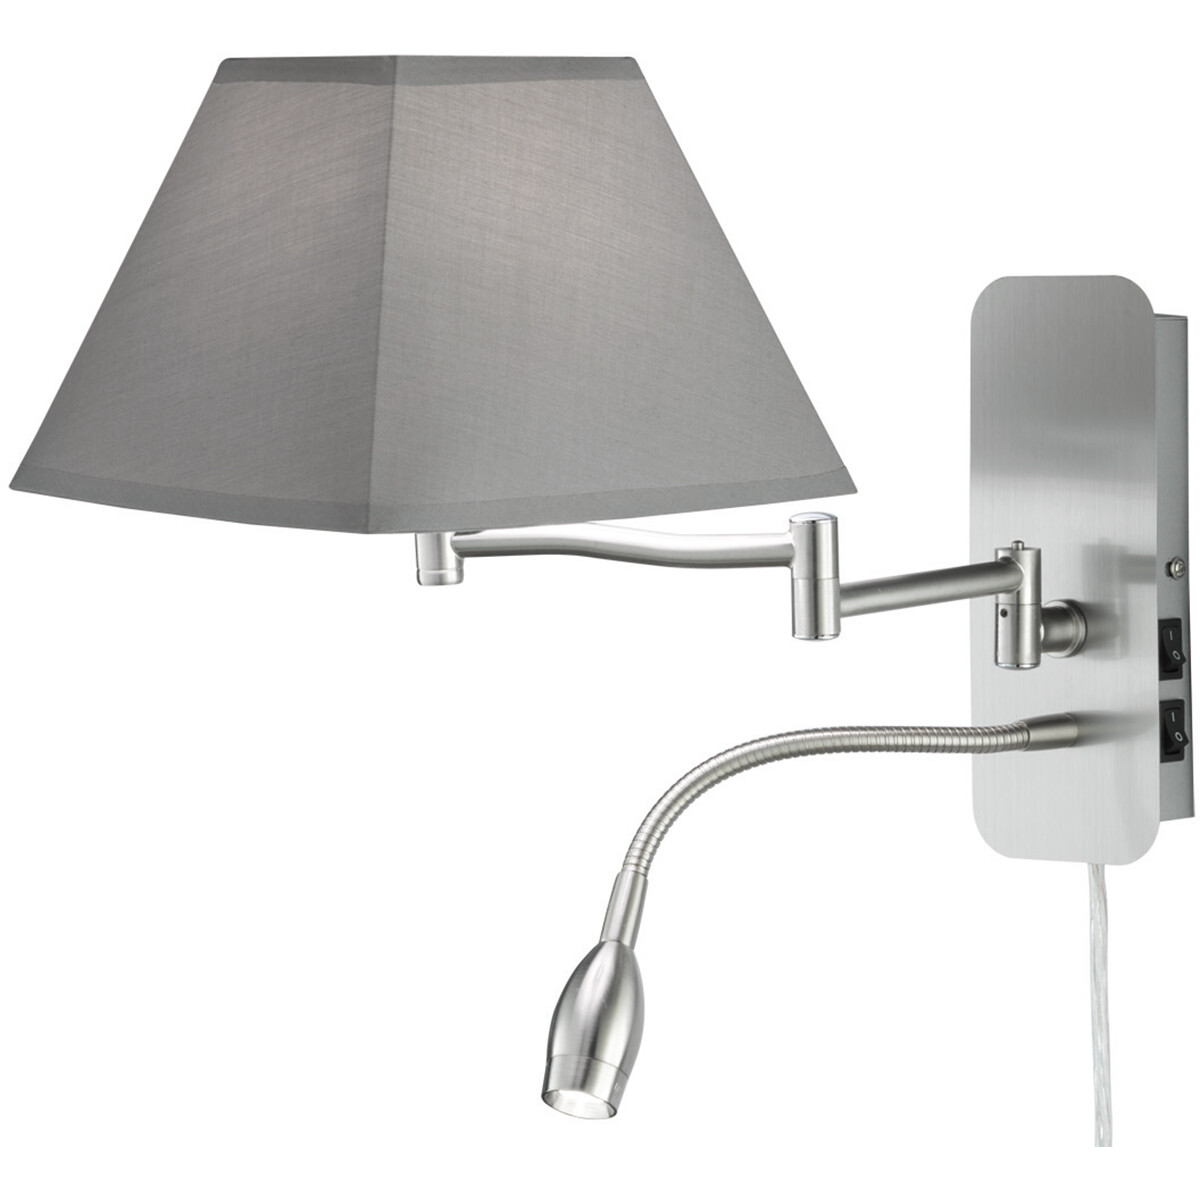 OSRAM - LED Wandlamp - Trion Hotia - E14 Fitting - 3W - Warm Wit 3000K - Vierkant - Mat Grijs - Alum